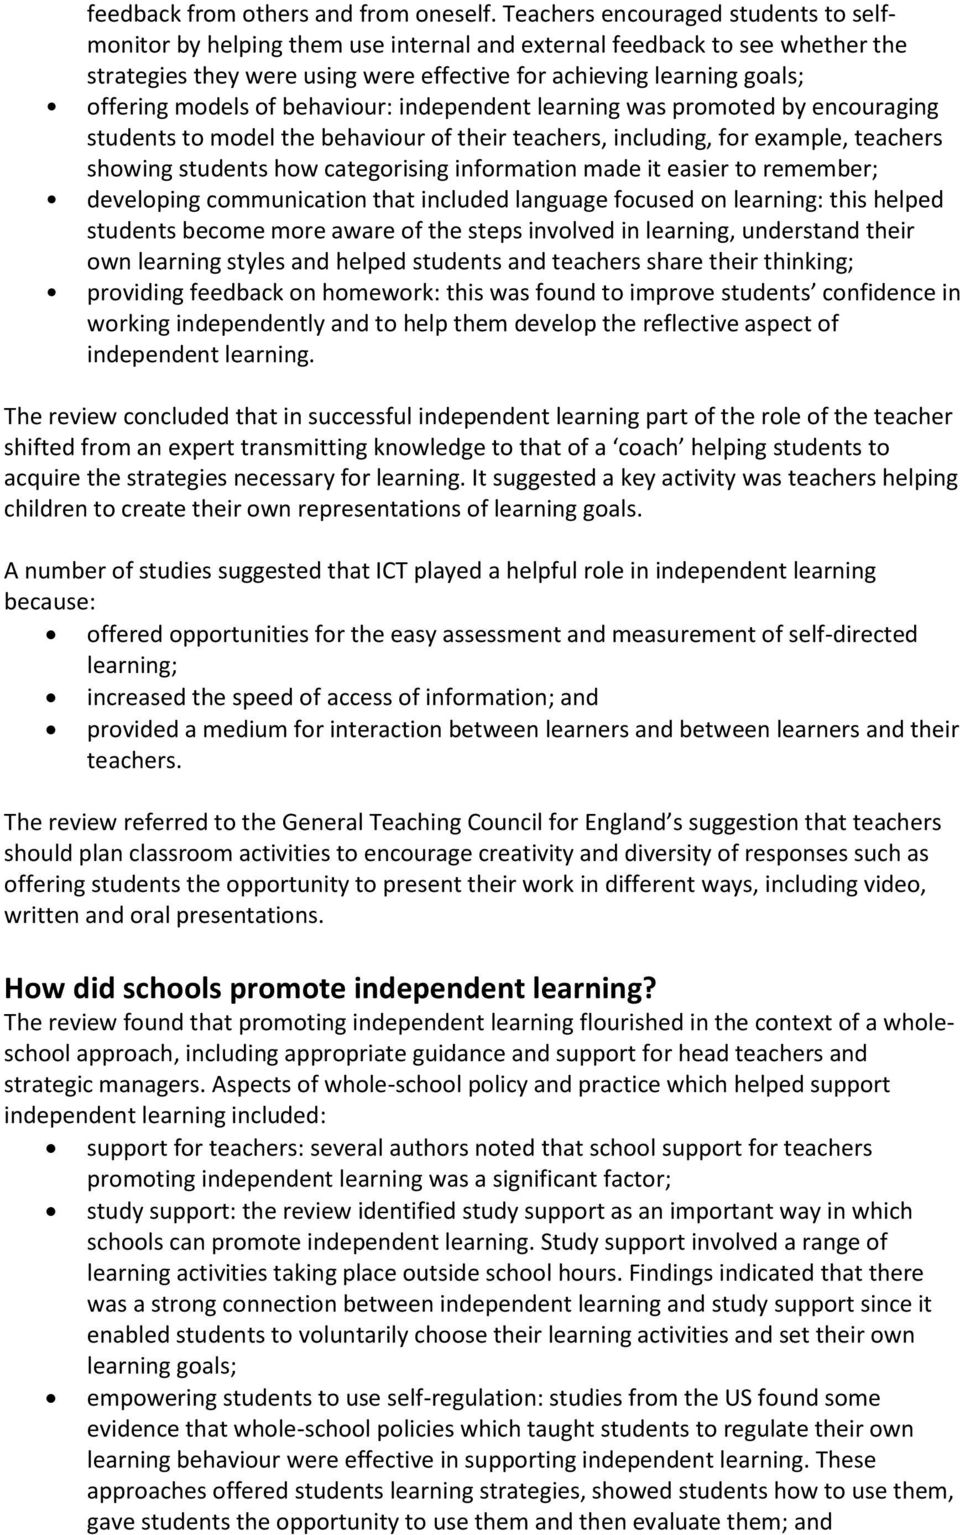 models of behaviour: independent learning was promoted by encouraging students to model the behaviour of their teachers, including, for example, teachers showing students how categorising information